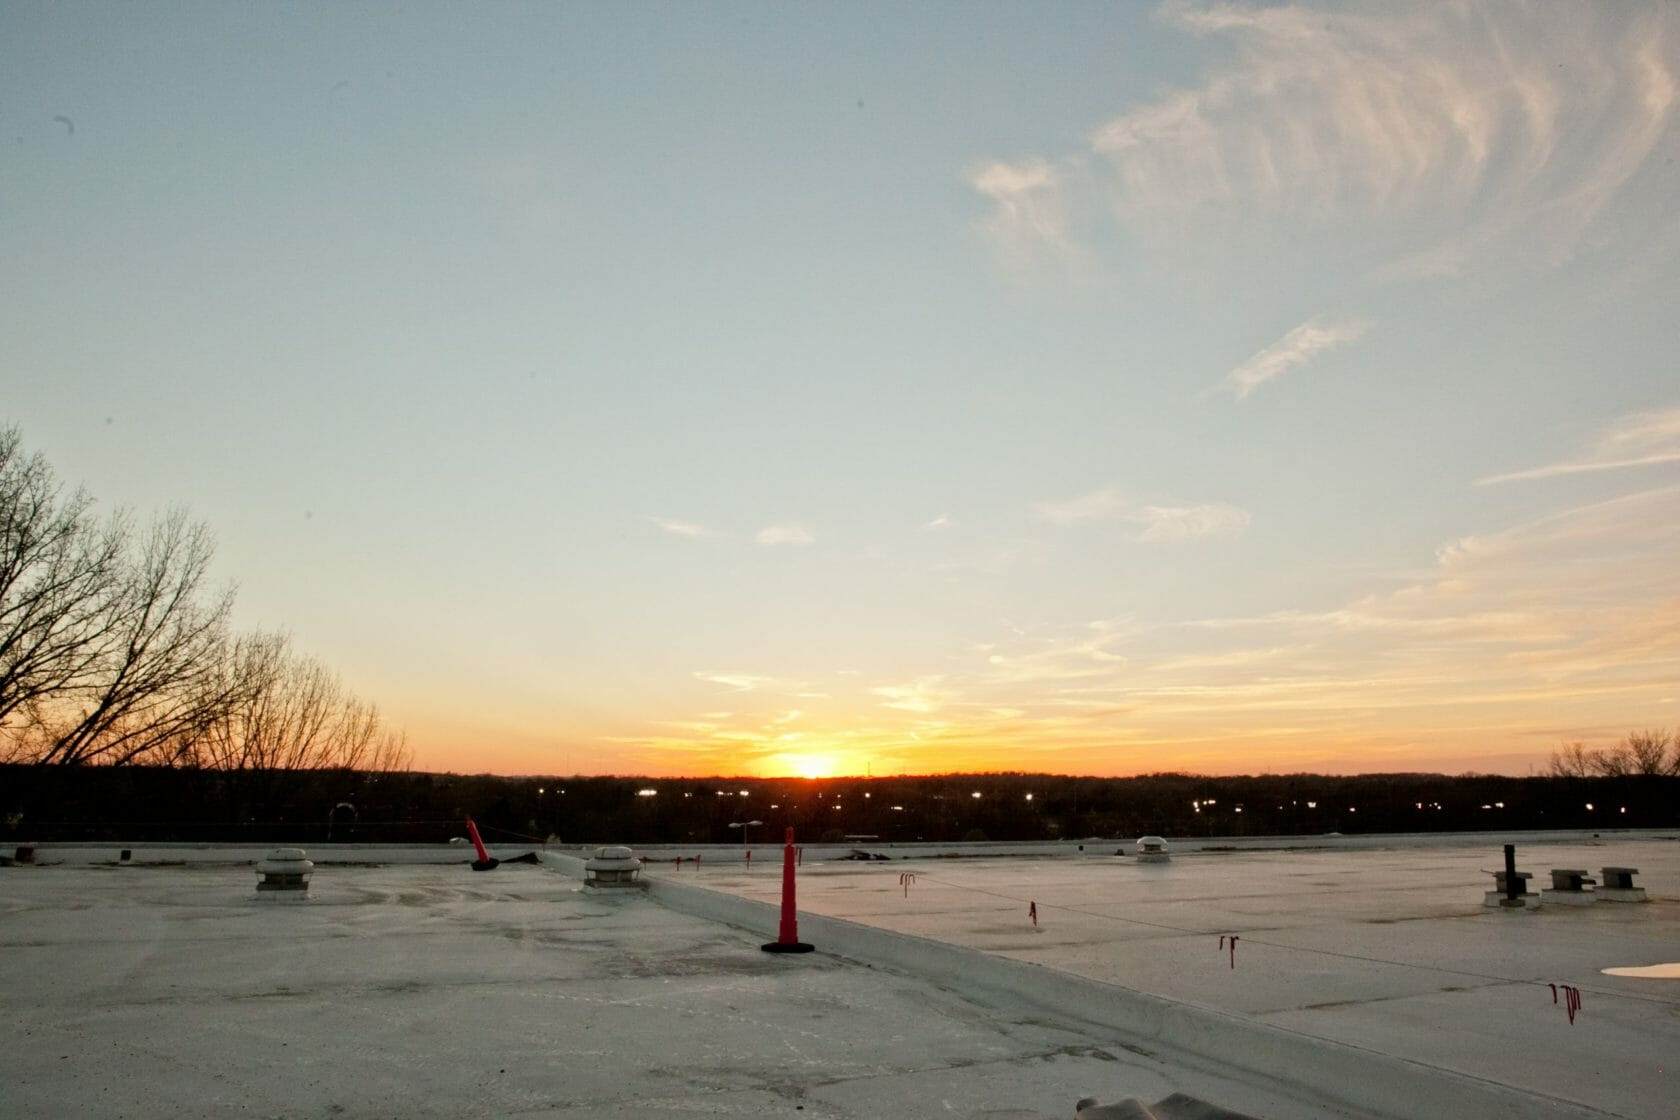 sunset view from a commercial roof